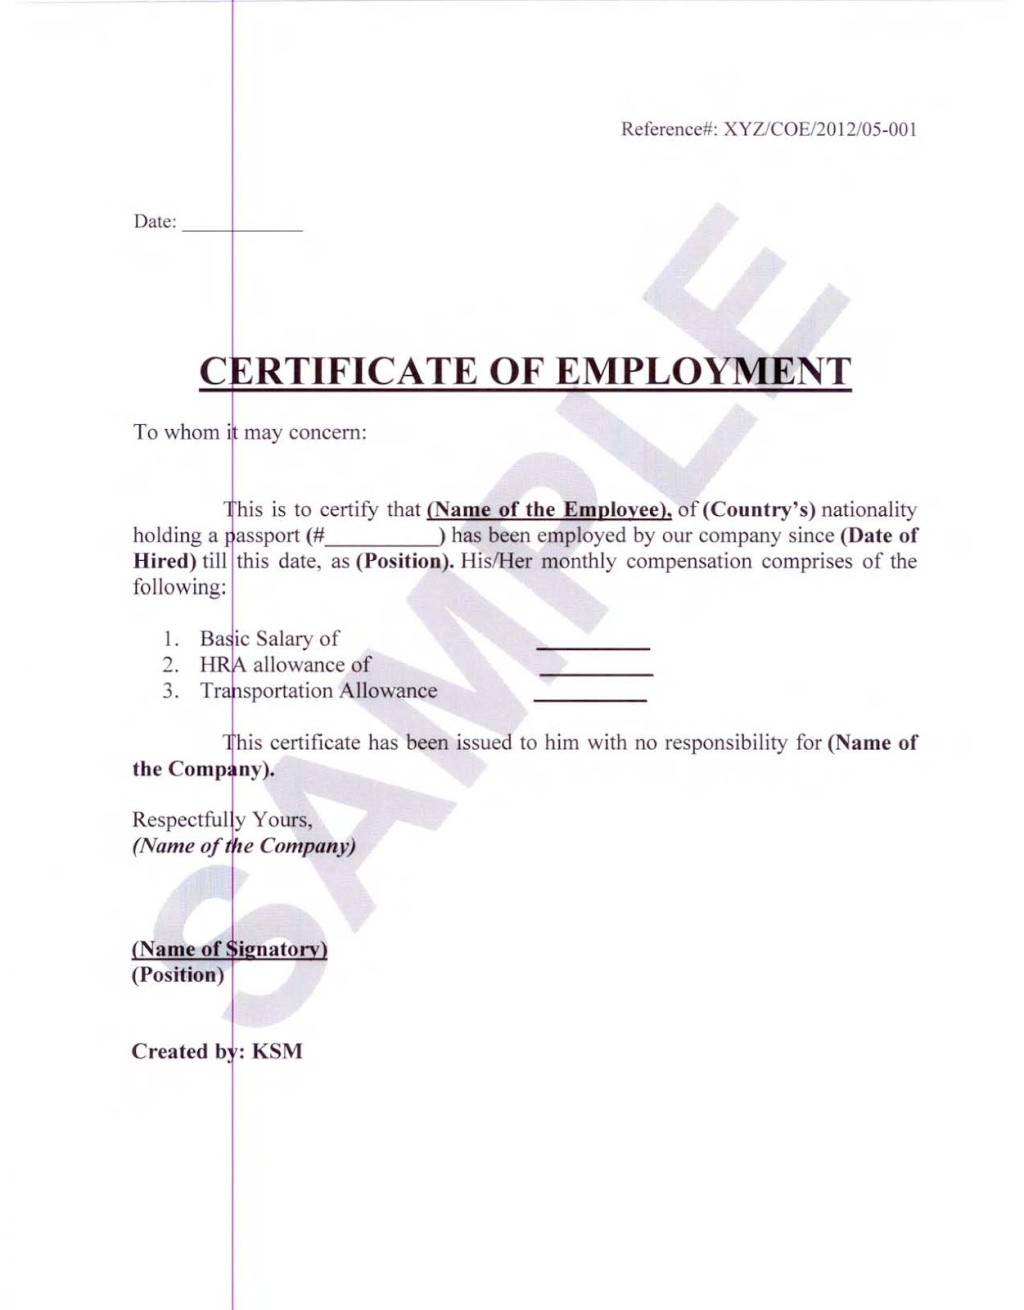 Salary Certificate Template 28+ Free Word, Excel, PDF, PSD